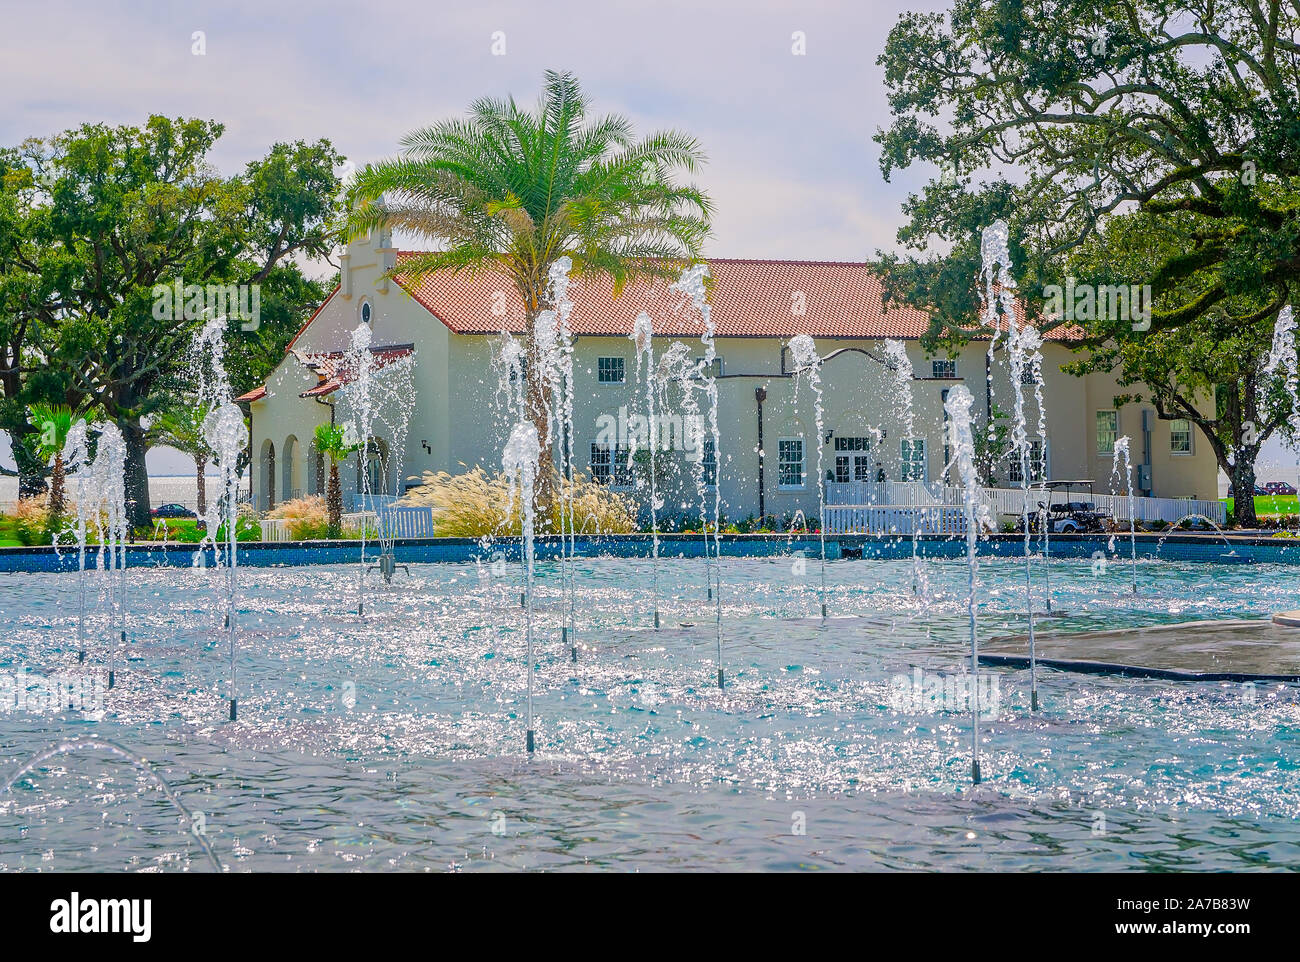 Water sprays at the Centennial Plaza fountain, Oct. 22, 2019, in Gulfport, Mississippi. Stock Photo